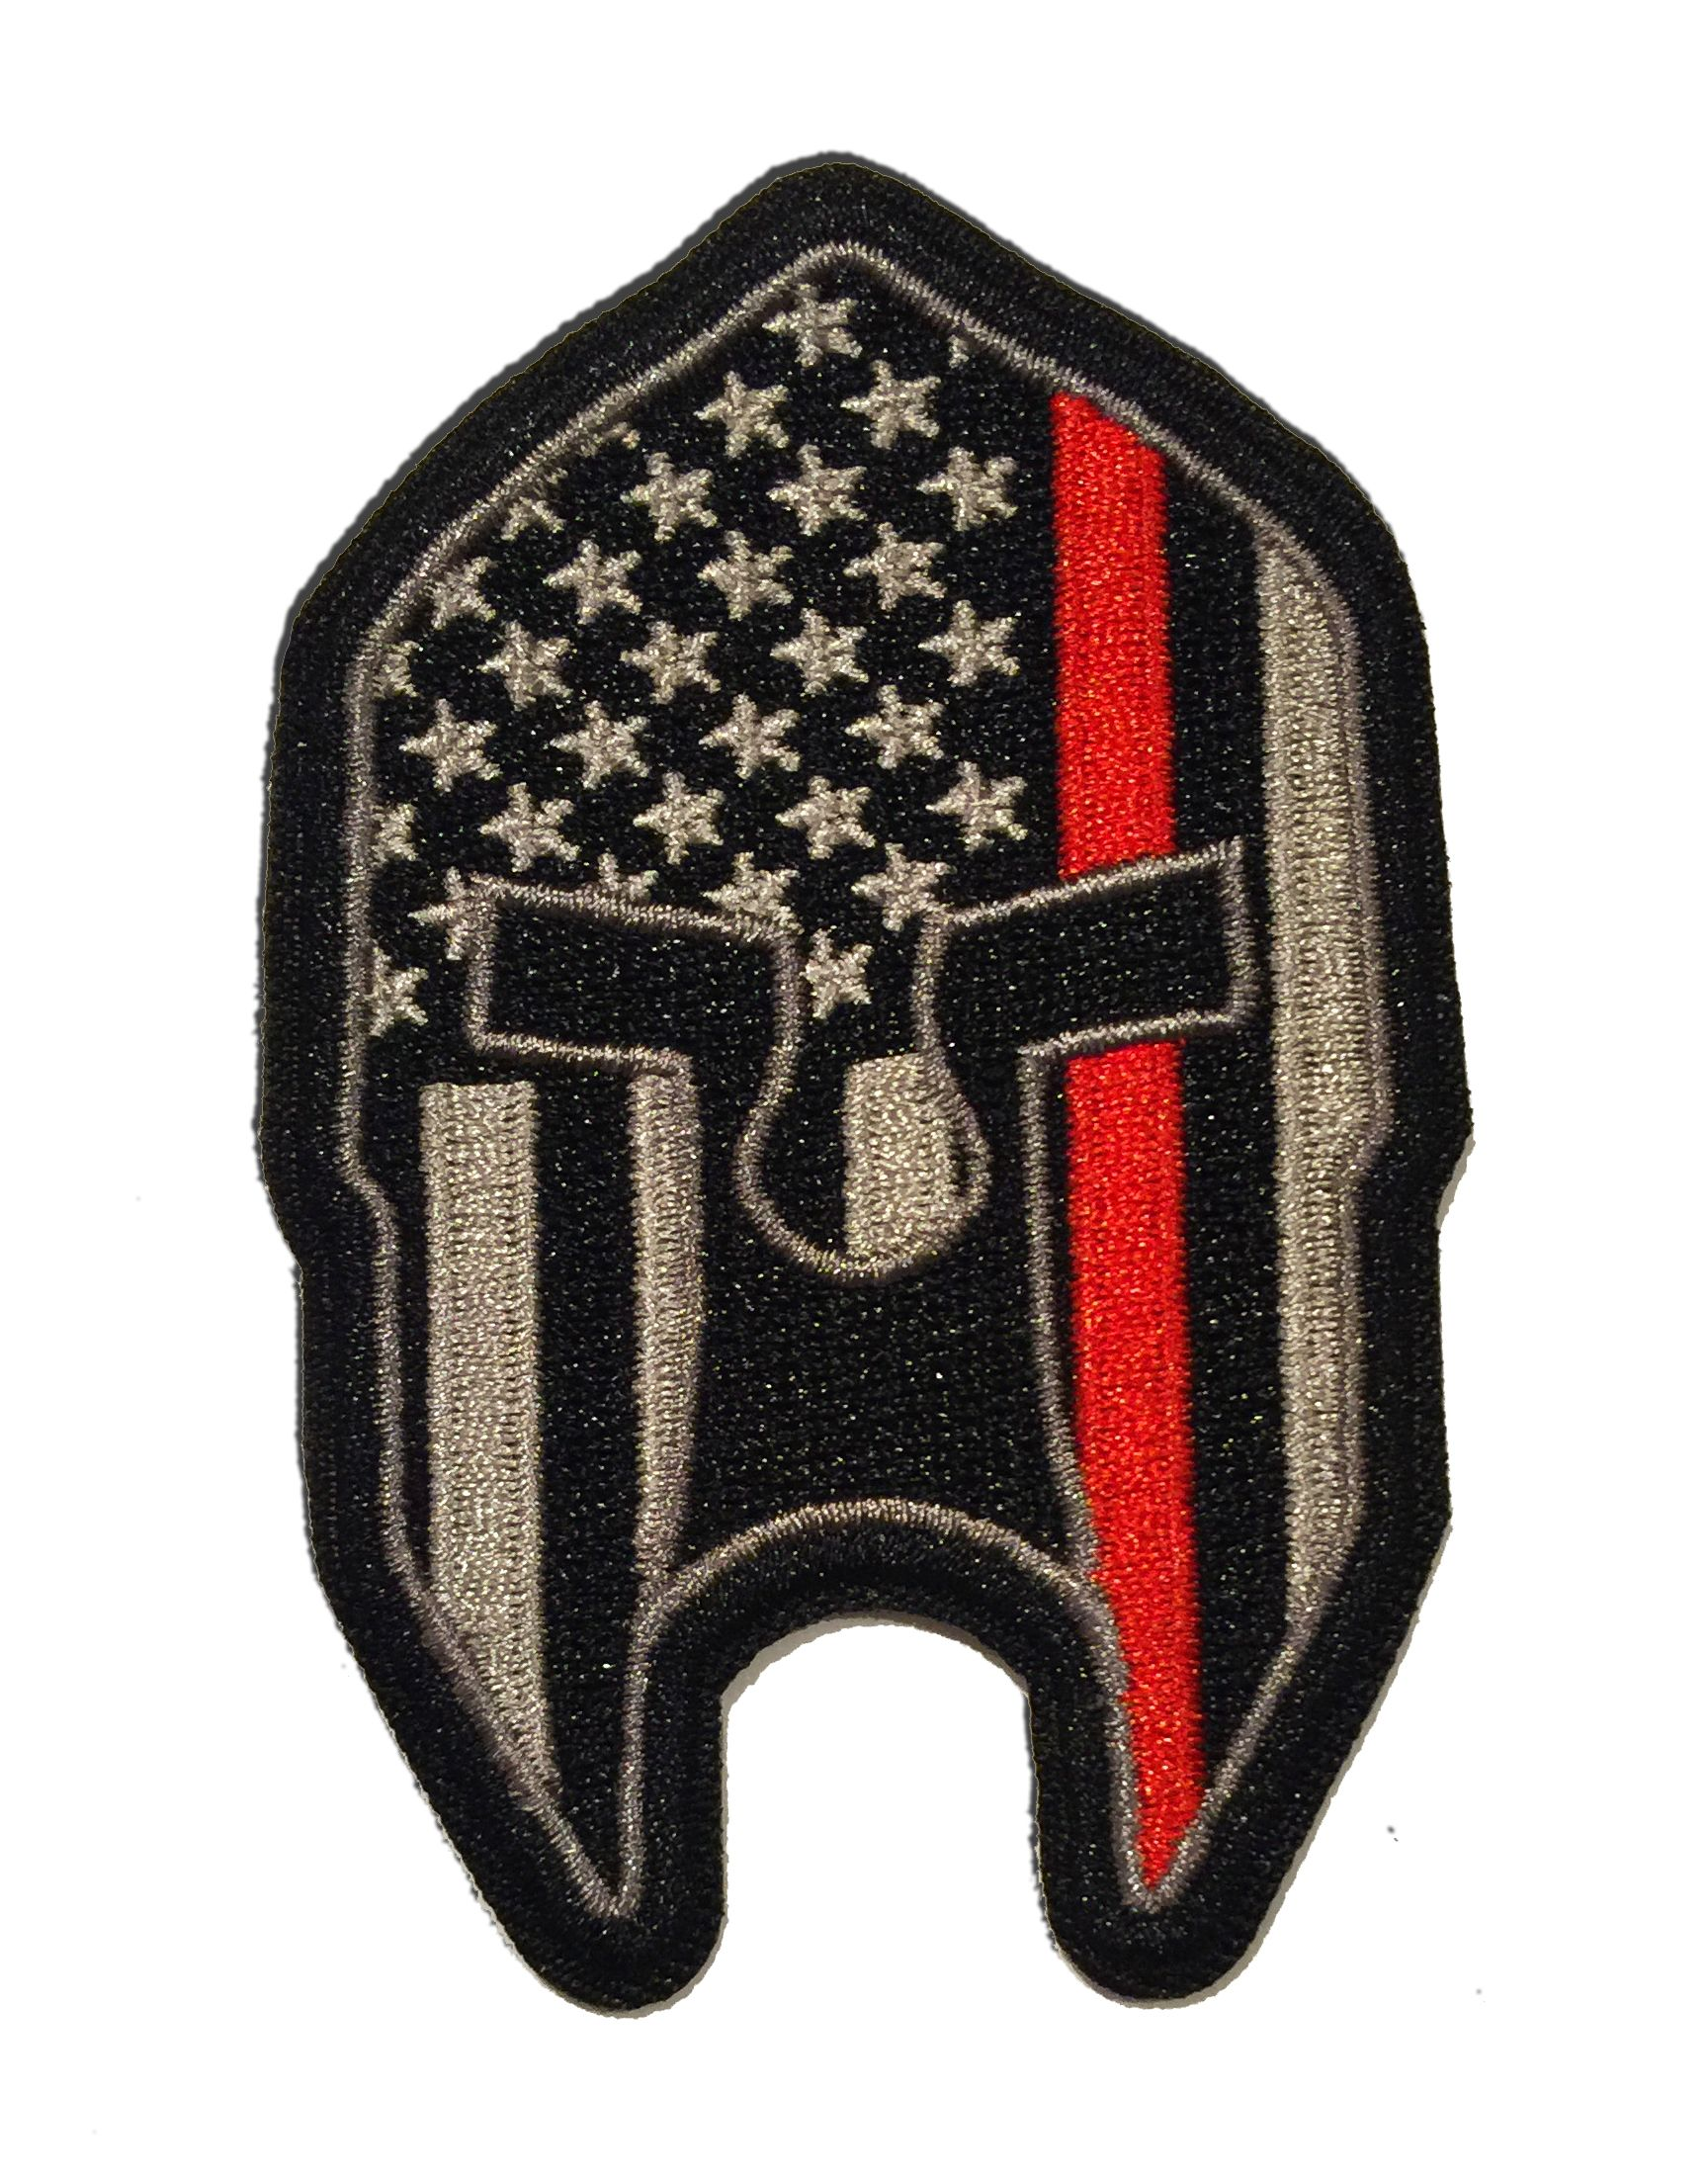 USA FLAG MARINE CORPS USMC  TACTICAL MORALE HOOK PATCH red//wht BY MILTACUSA